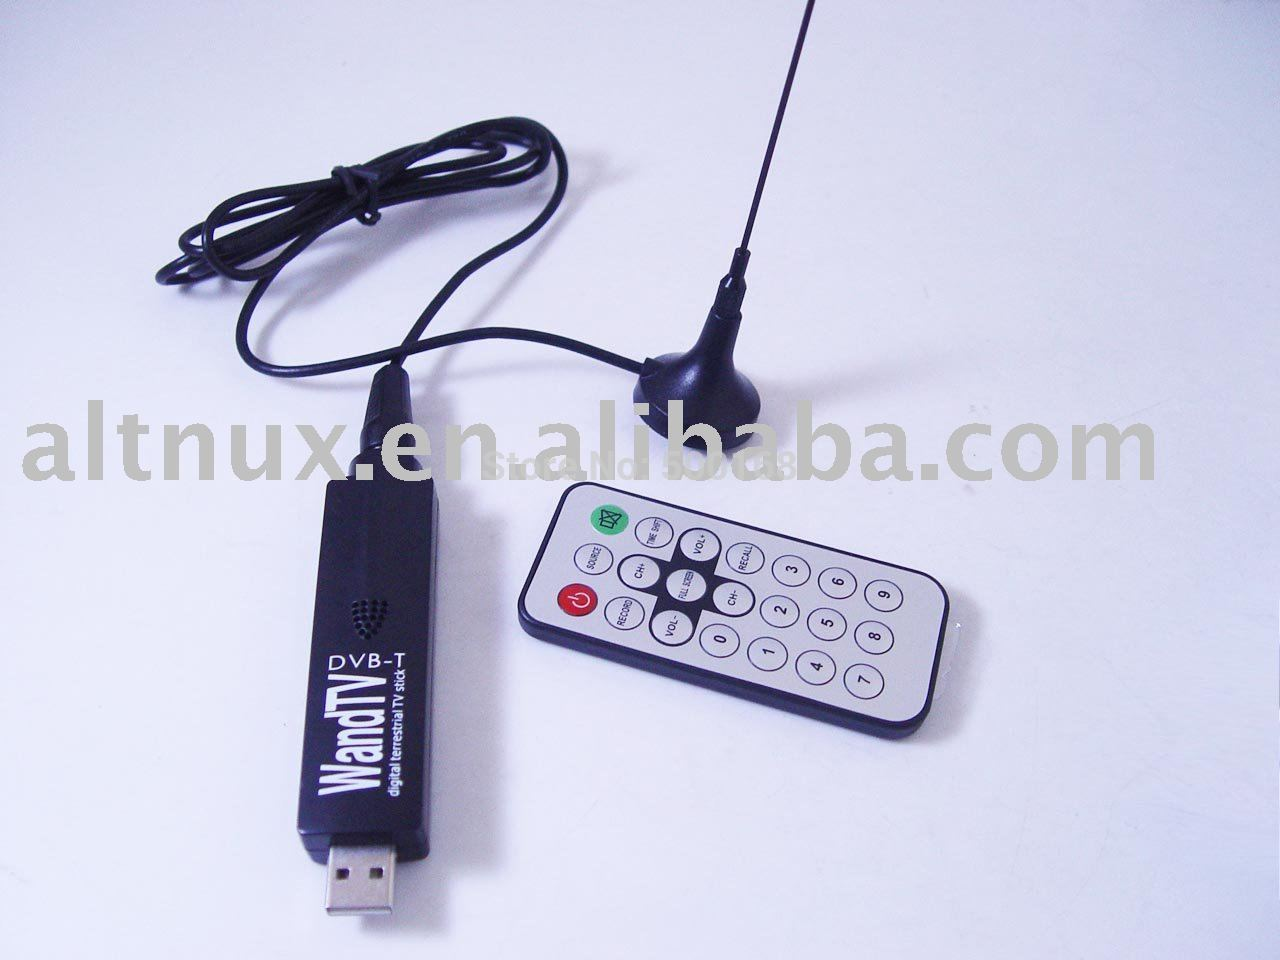 WandTV DVB-T USB HDTV TV TUNER RECEIVER RECORD PC CO5(China (Mainland))